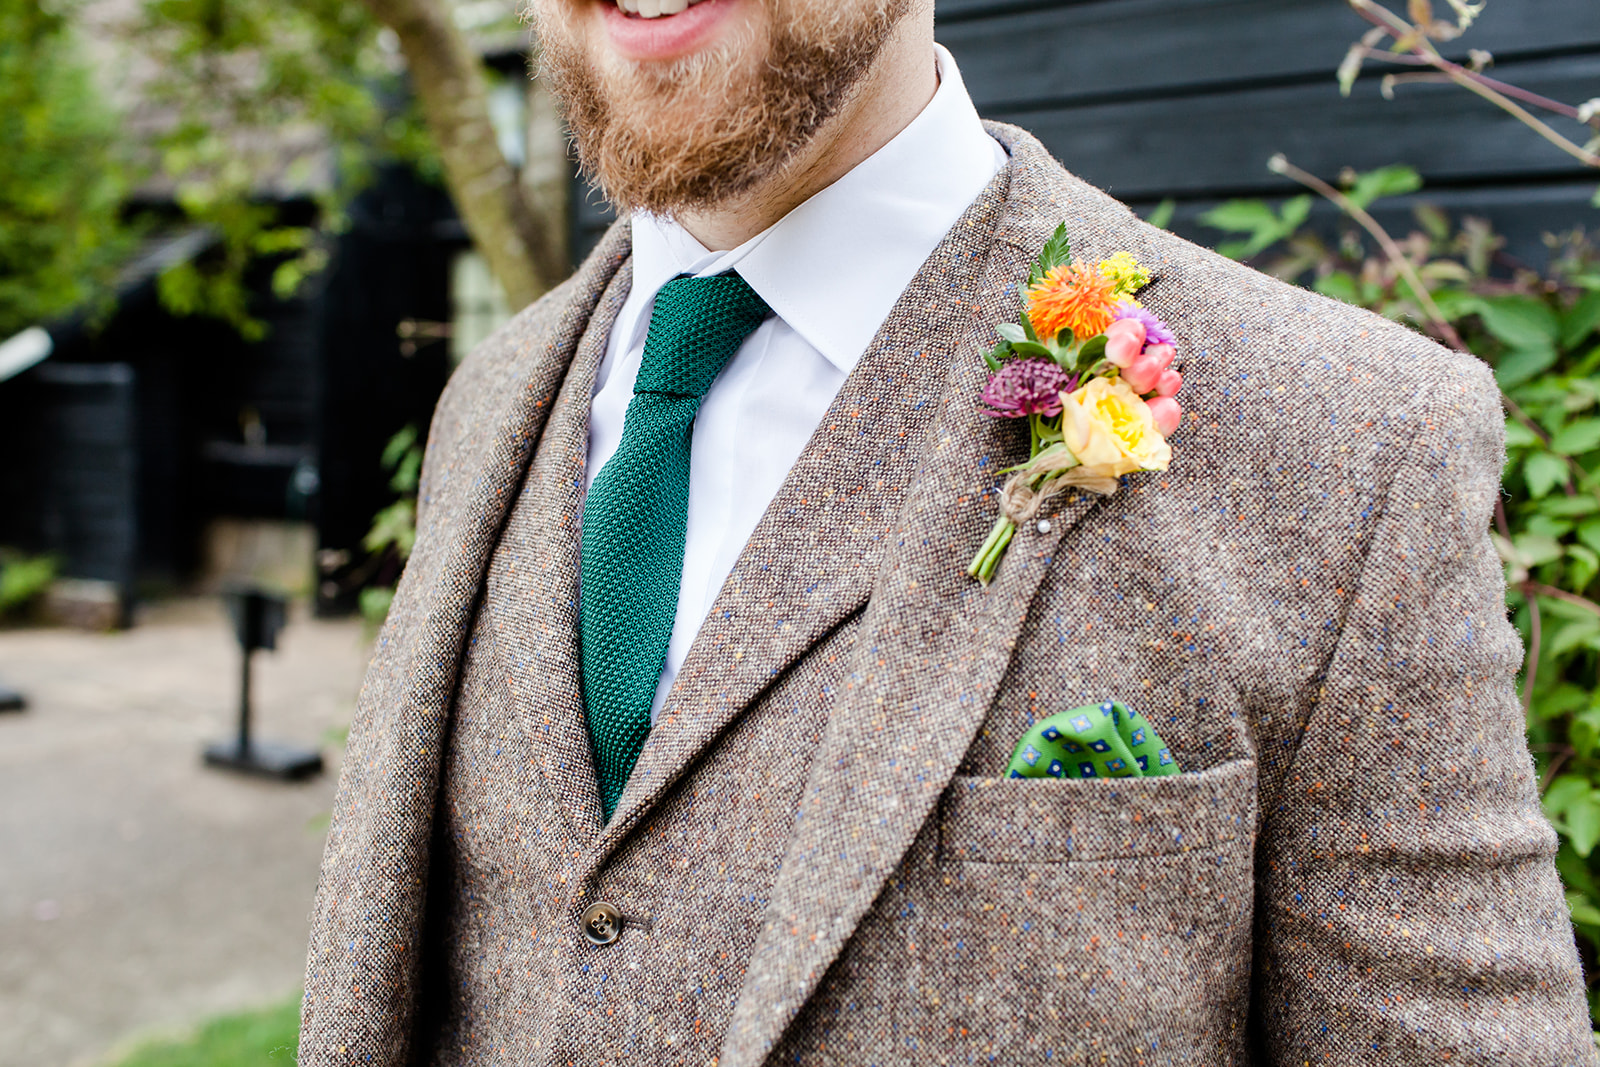 The Groom and his boutonniere